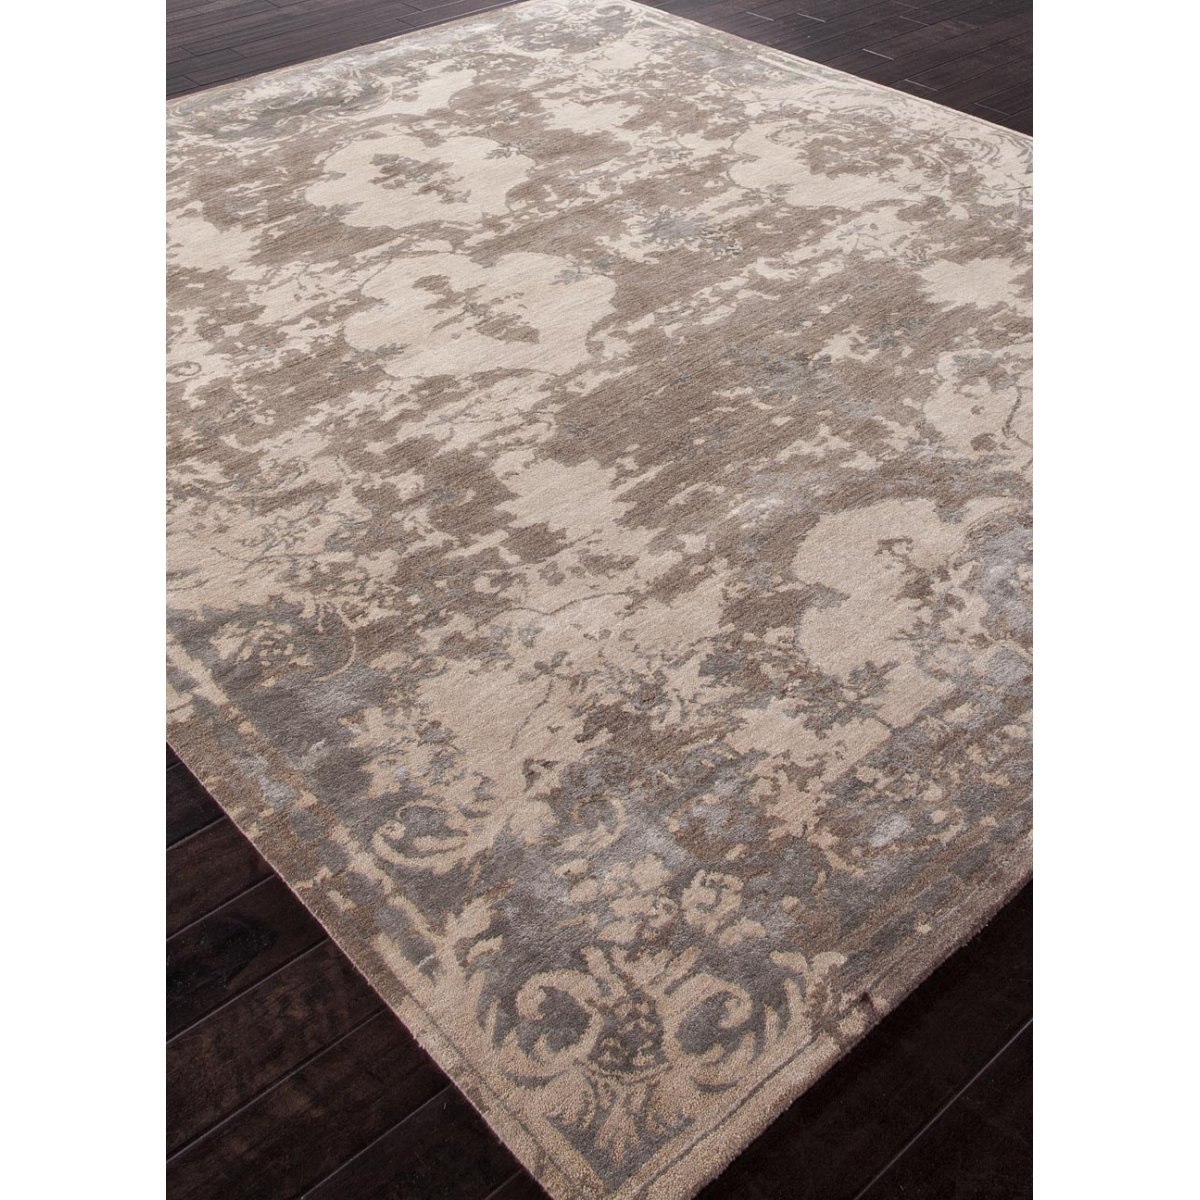 Designer Rug Versailles Taupe Wool Amp Silk French Style